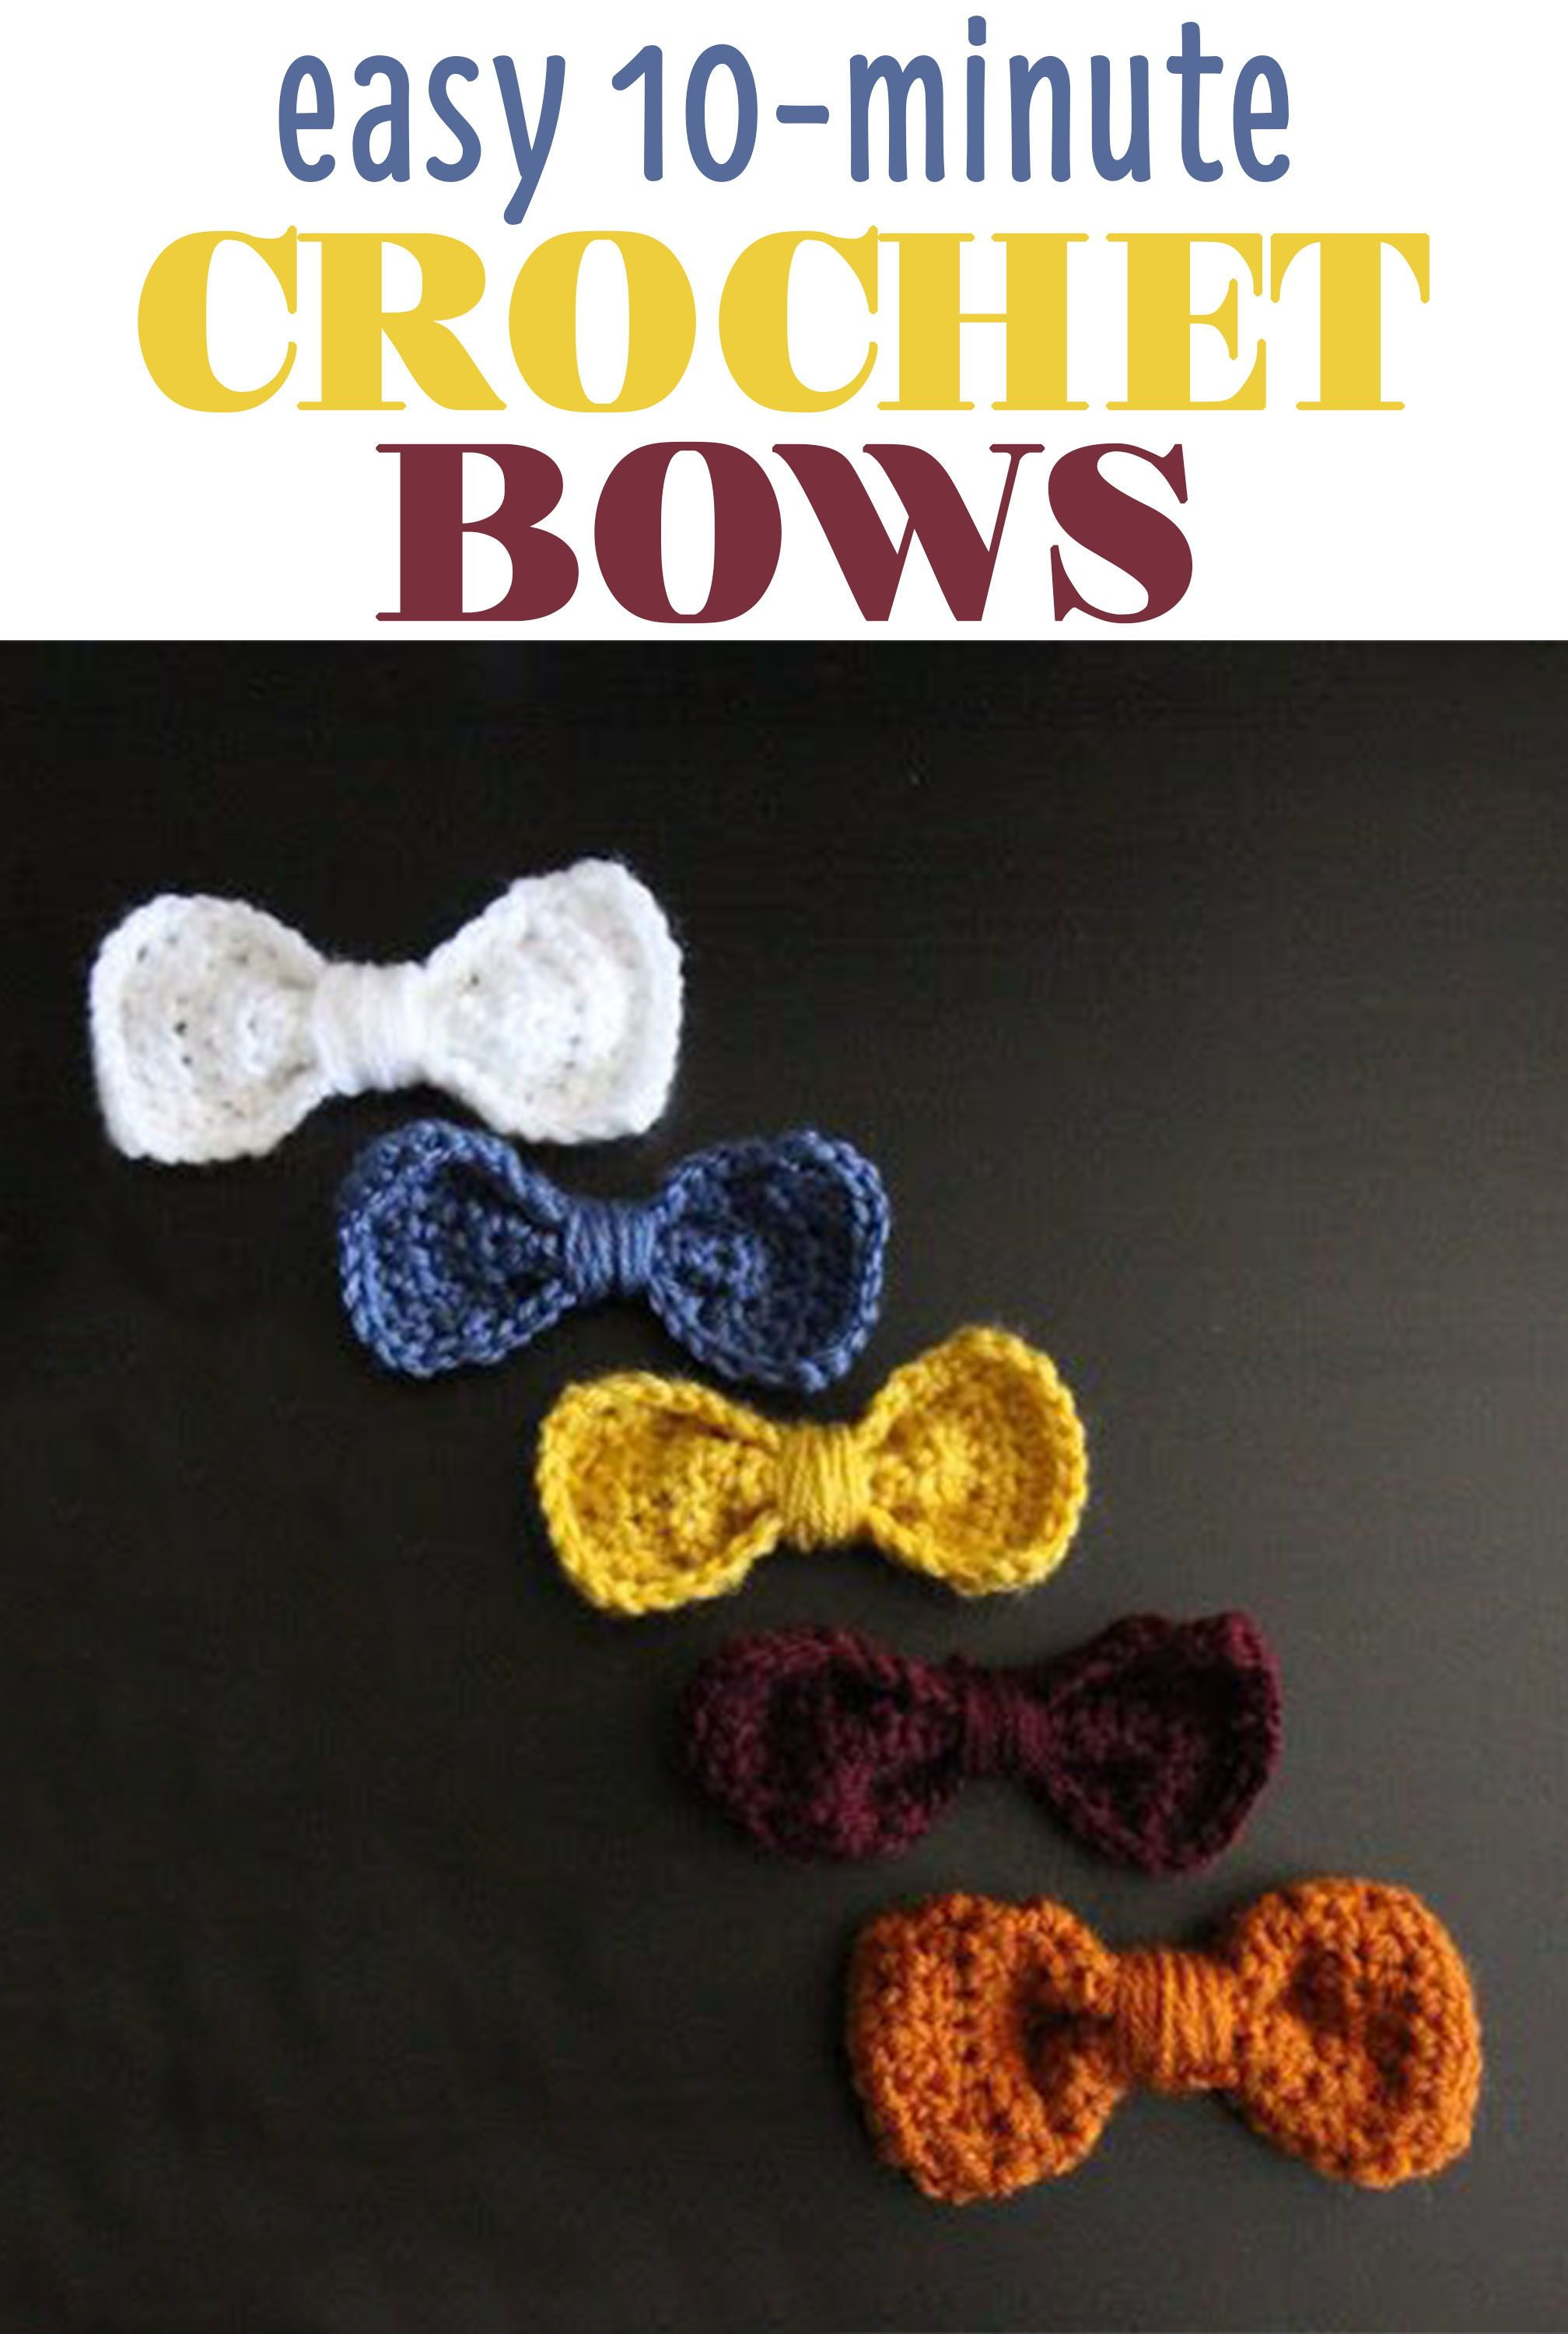 Crochet These Darling Bows In Just 10 Quick Minutes Its Super Easy To Attach